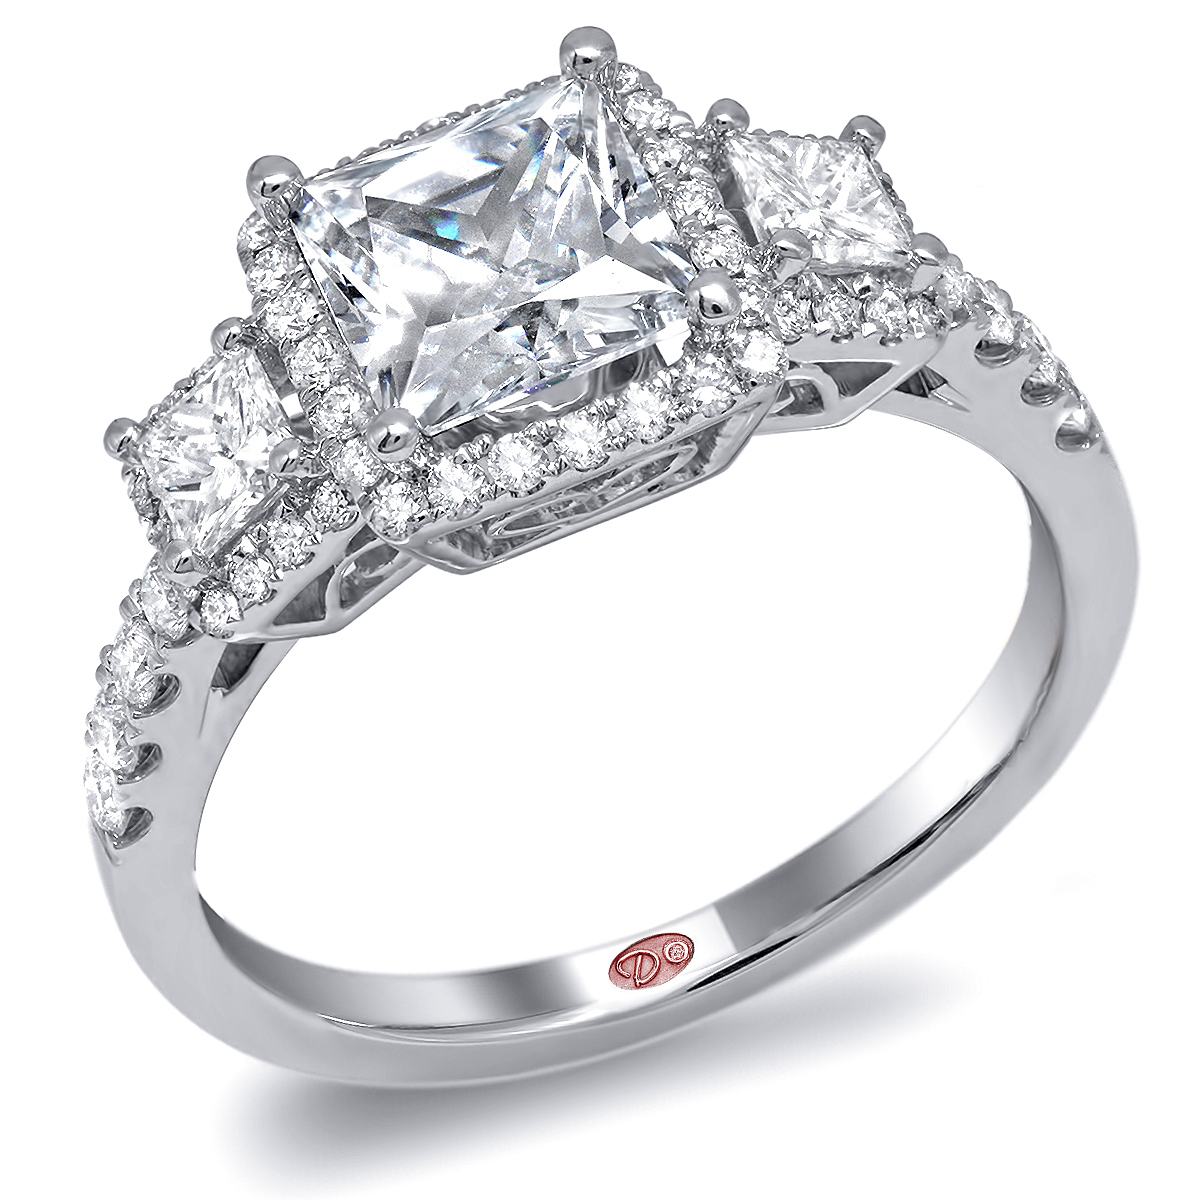 Designer engagement ring dw6211 for Wedding rings designers